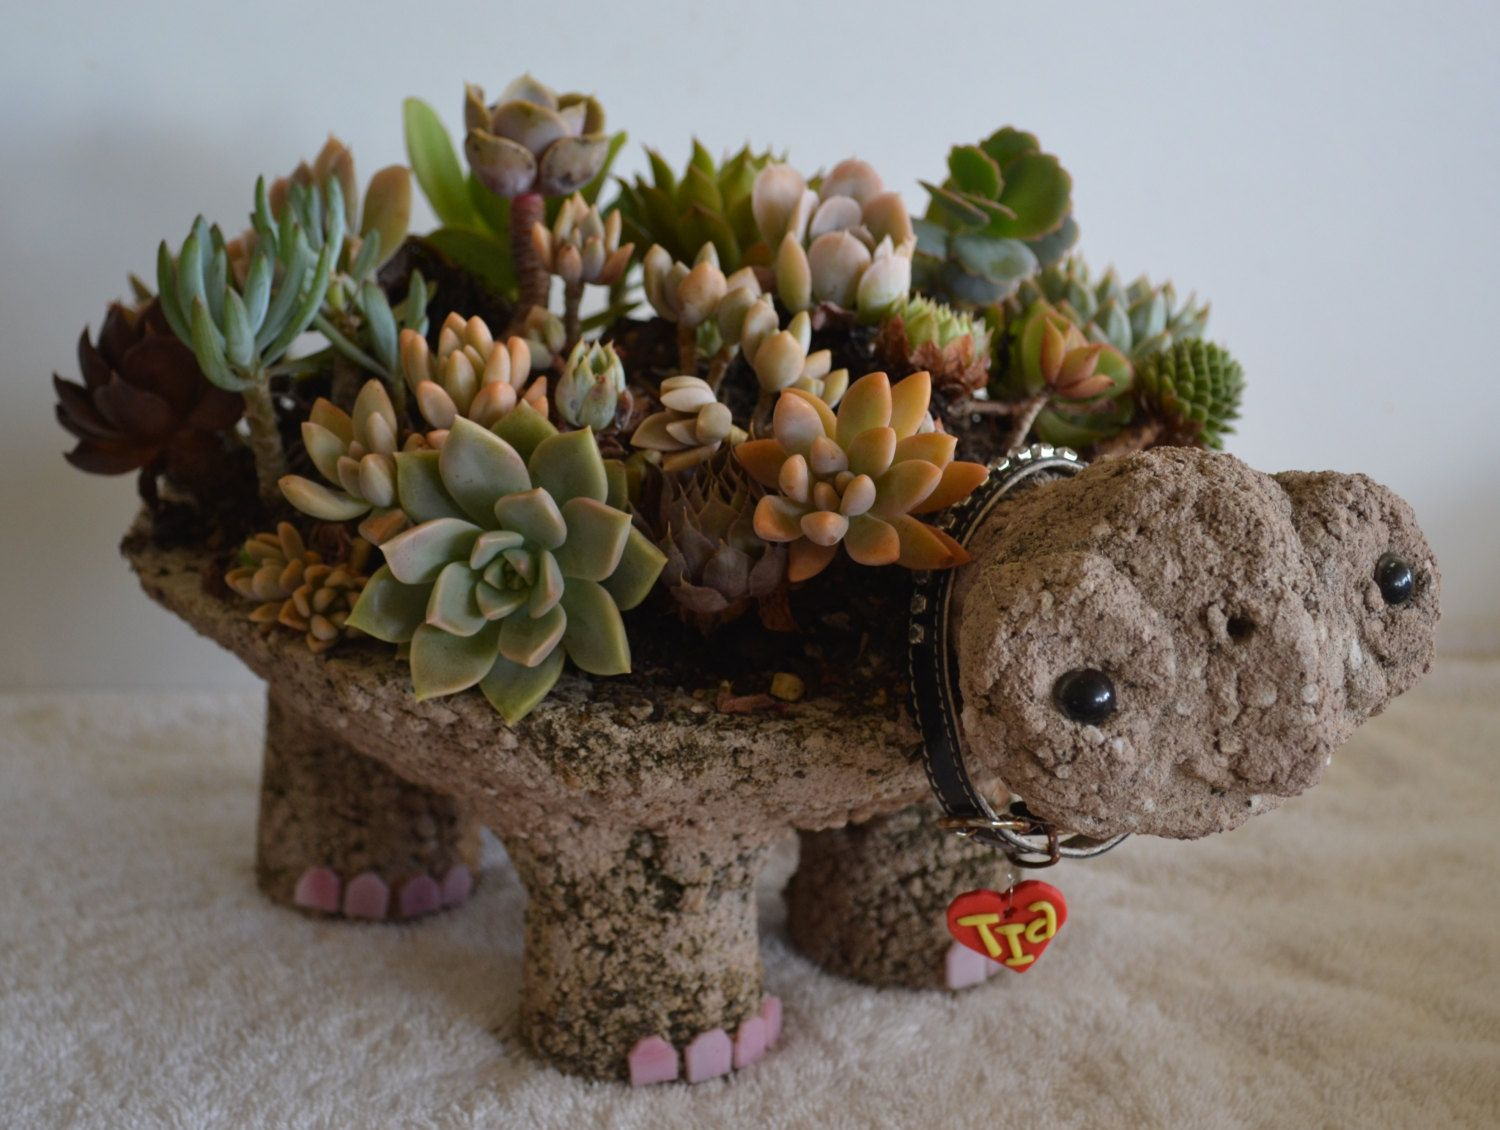 Turtle Pot Hypertufa Succulent Planter Tutorial Pdf 4 99 Via Etsy Succulents Diy Succulent Planter Succulents Indoor